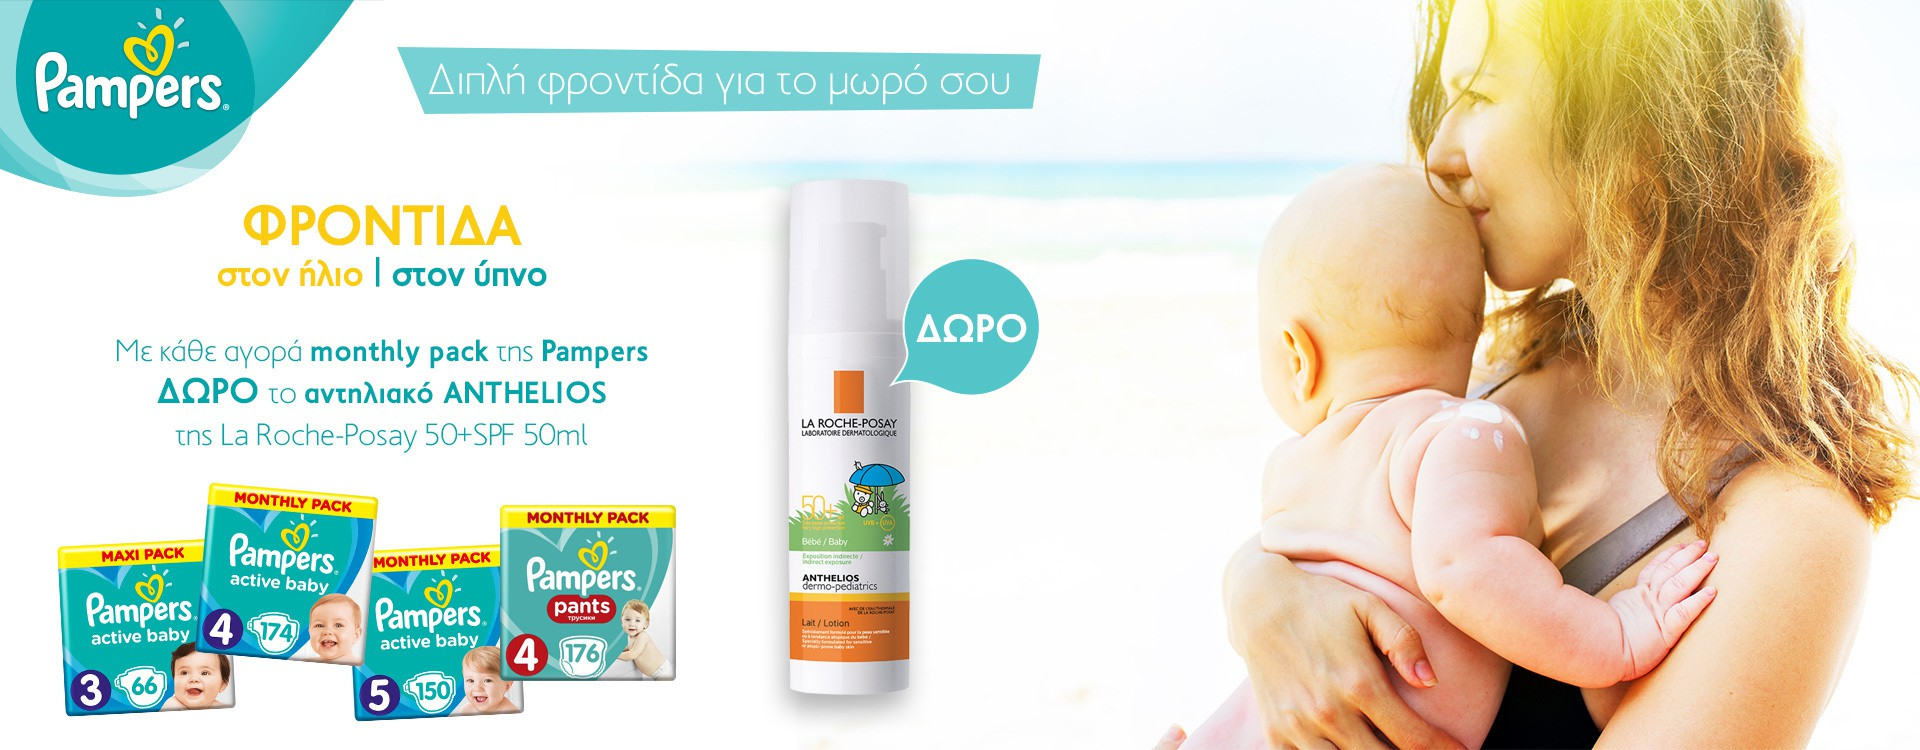 Slider pampers anthelios apr19 1920x750